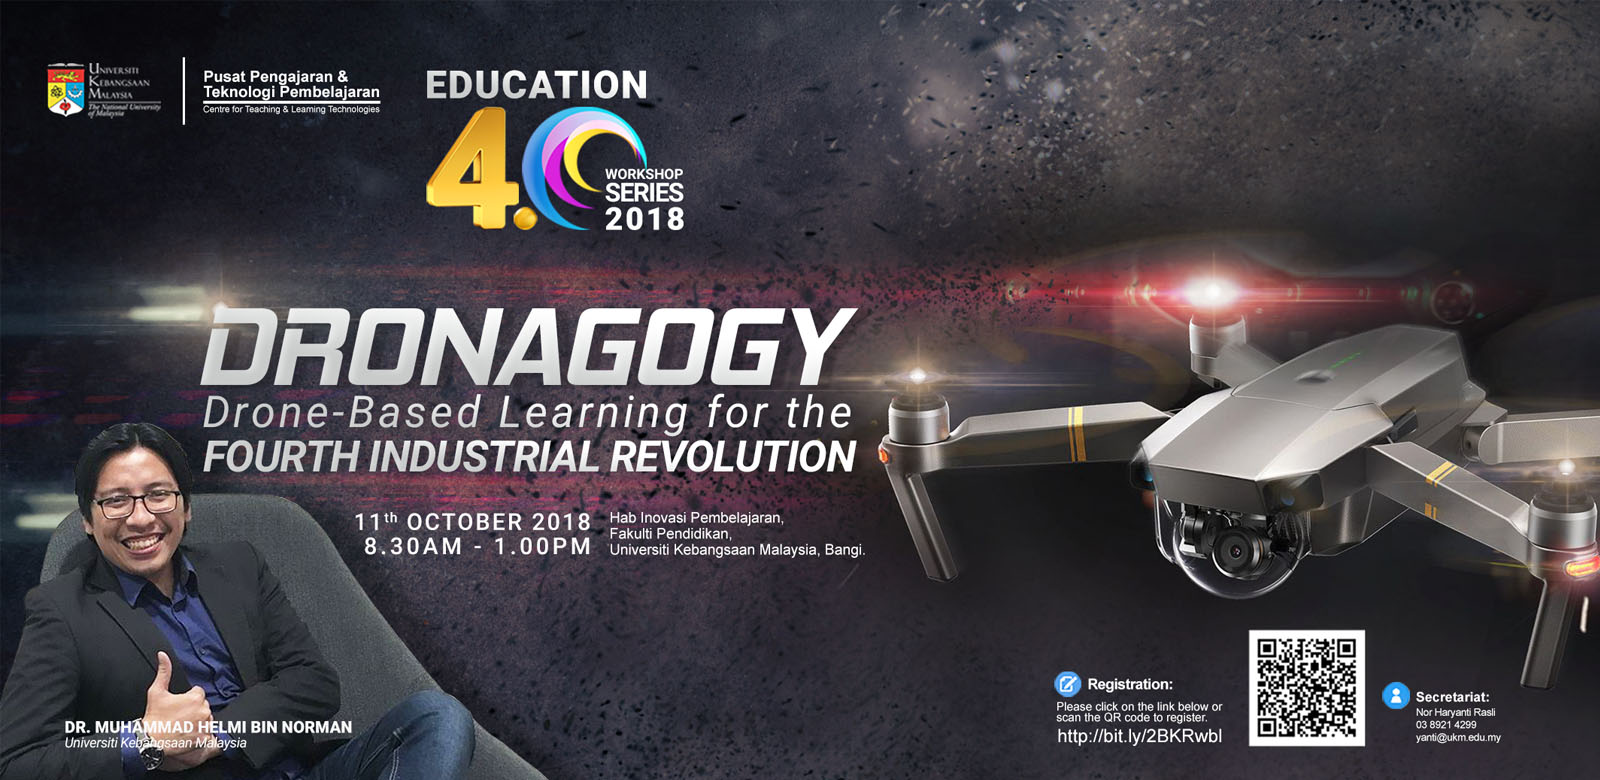 DRONAGOGY: DRONE-BASED LEARNING FOR THE FOURTH INDUSTRIAL REVOLUTION